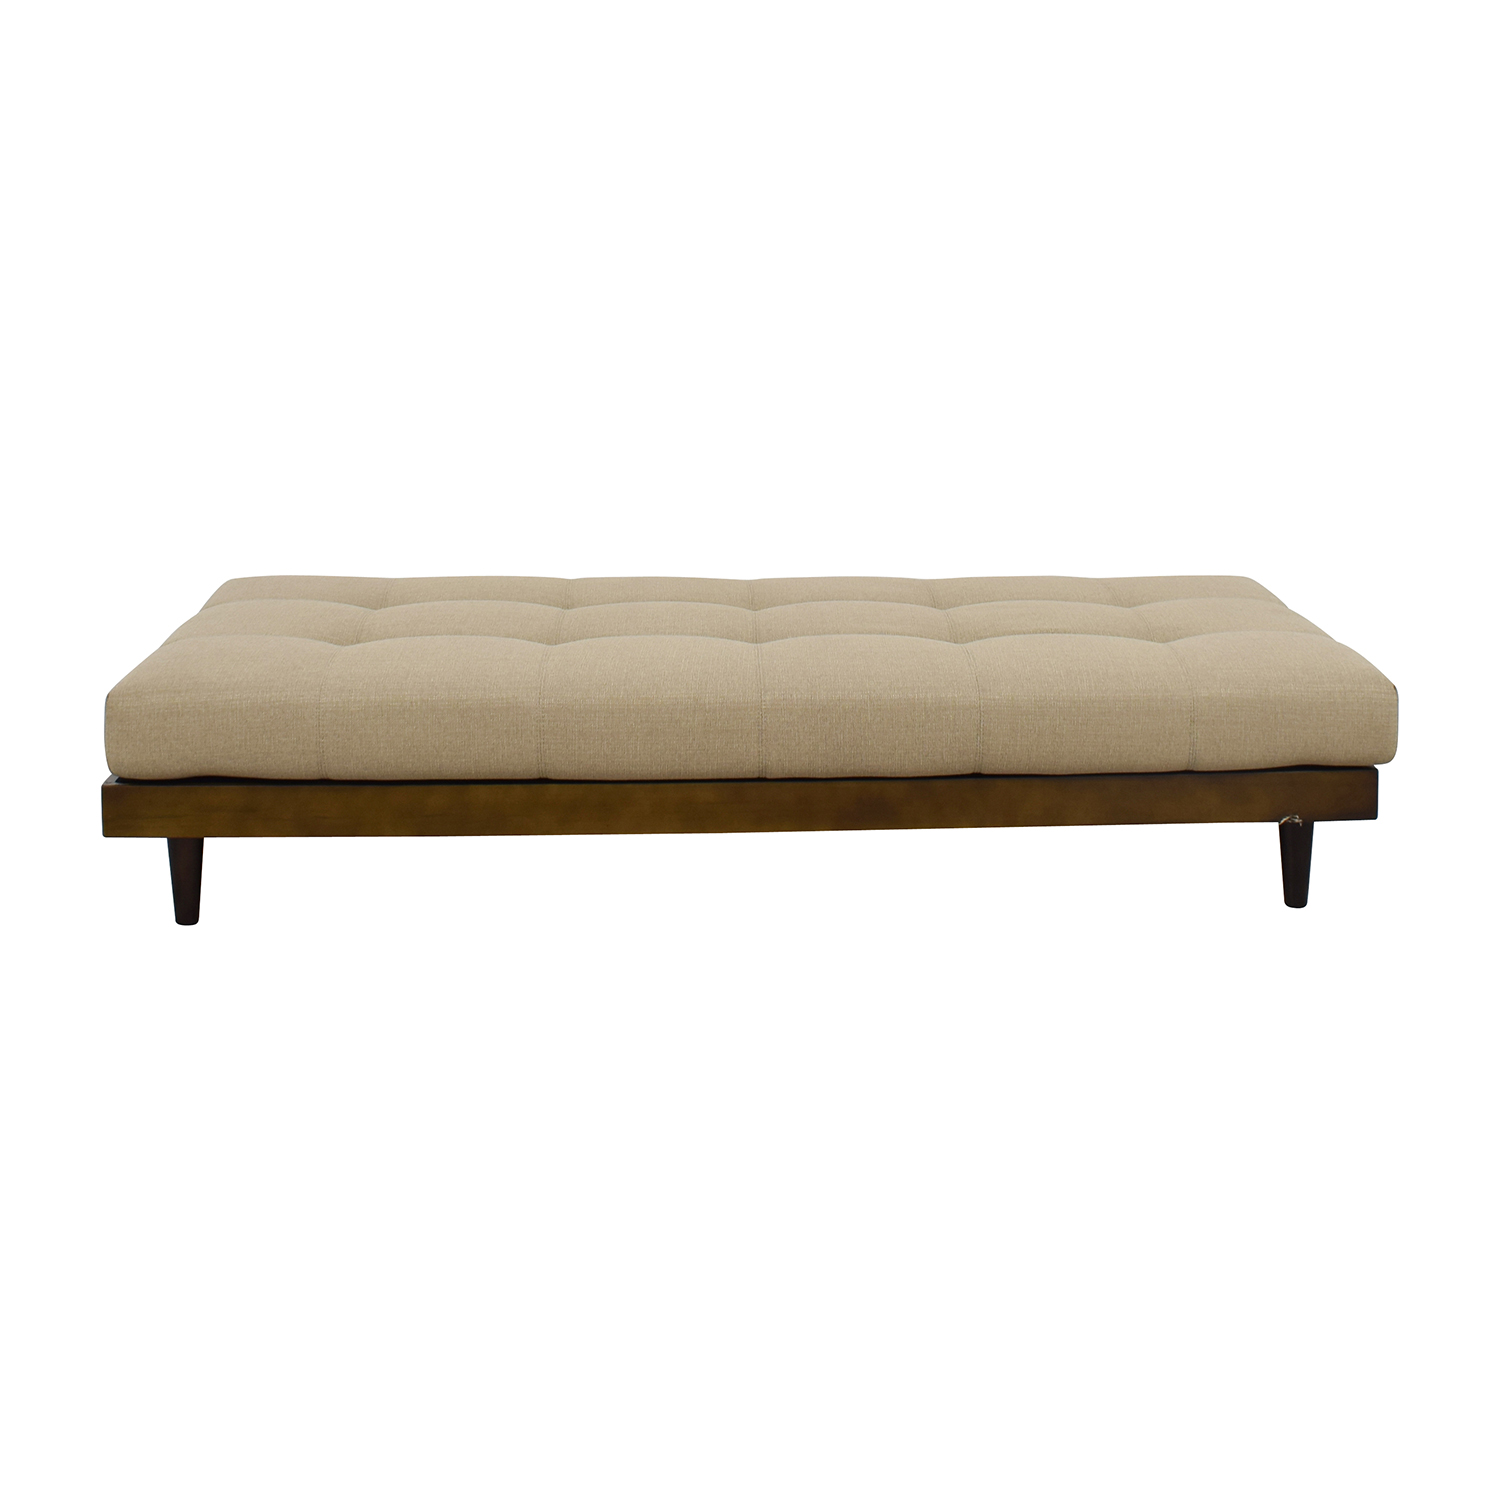 InMod InMod Alessa Tan Daybed used